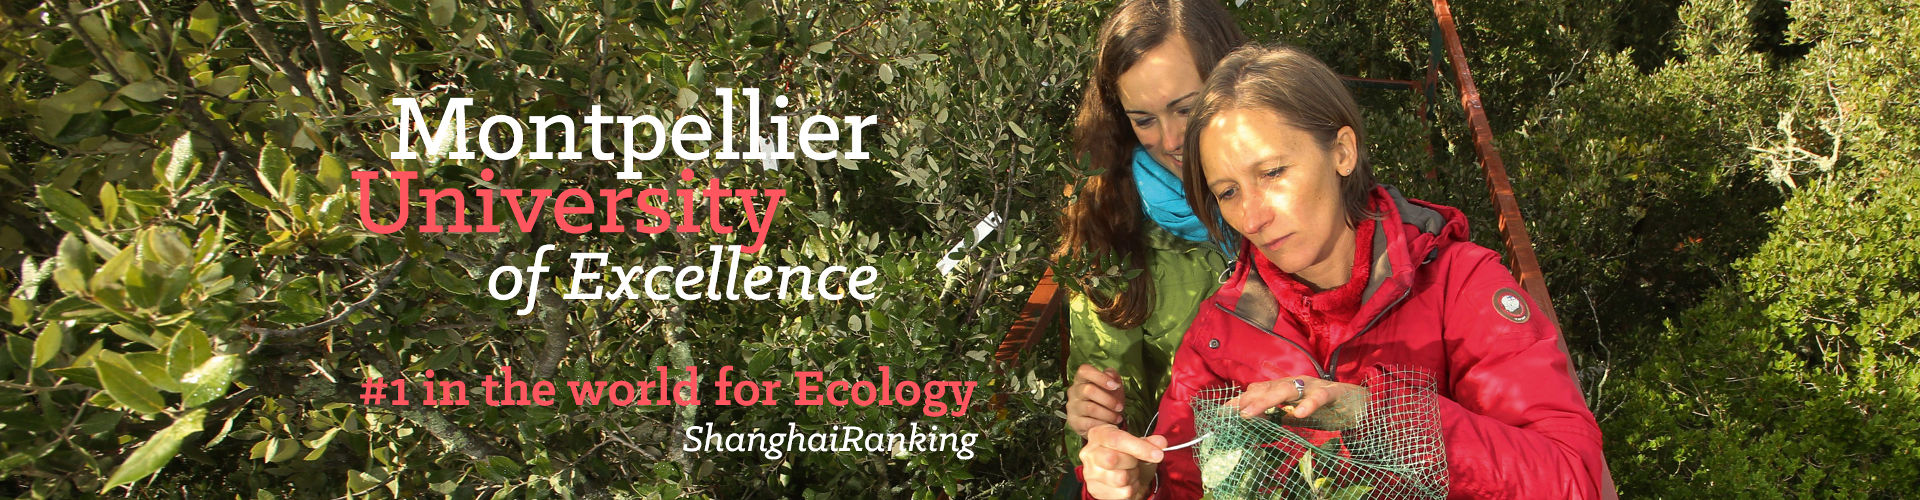 Montpellier University - First place in ecology - ShanghaiRanking